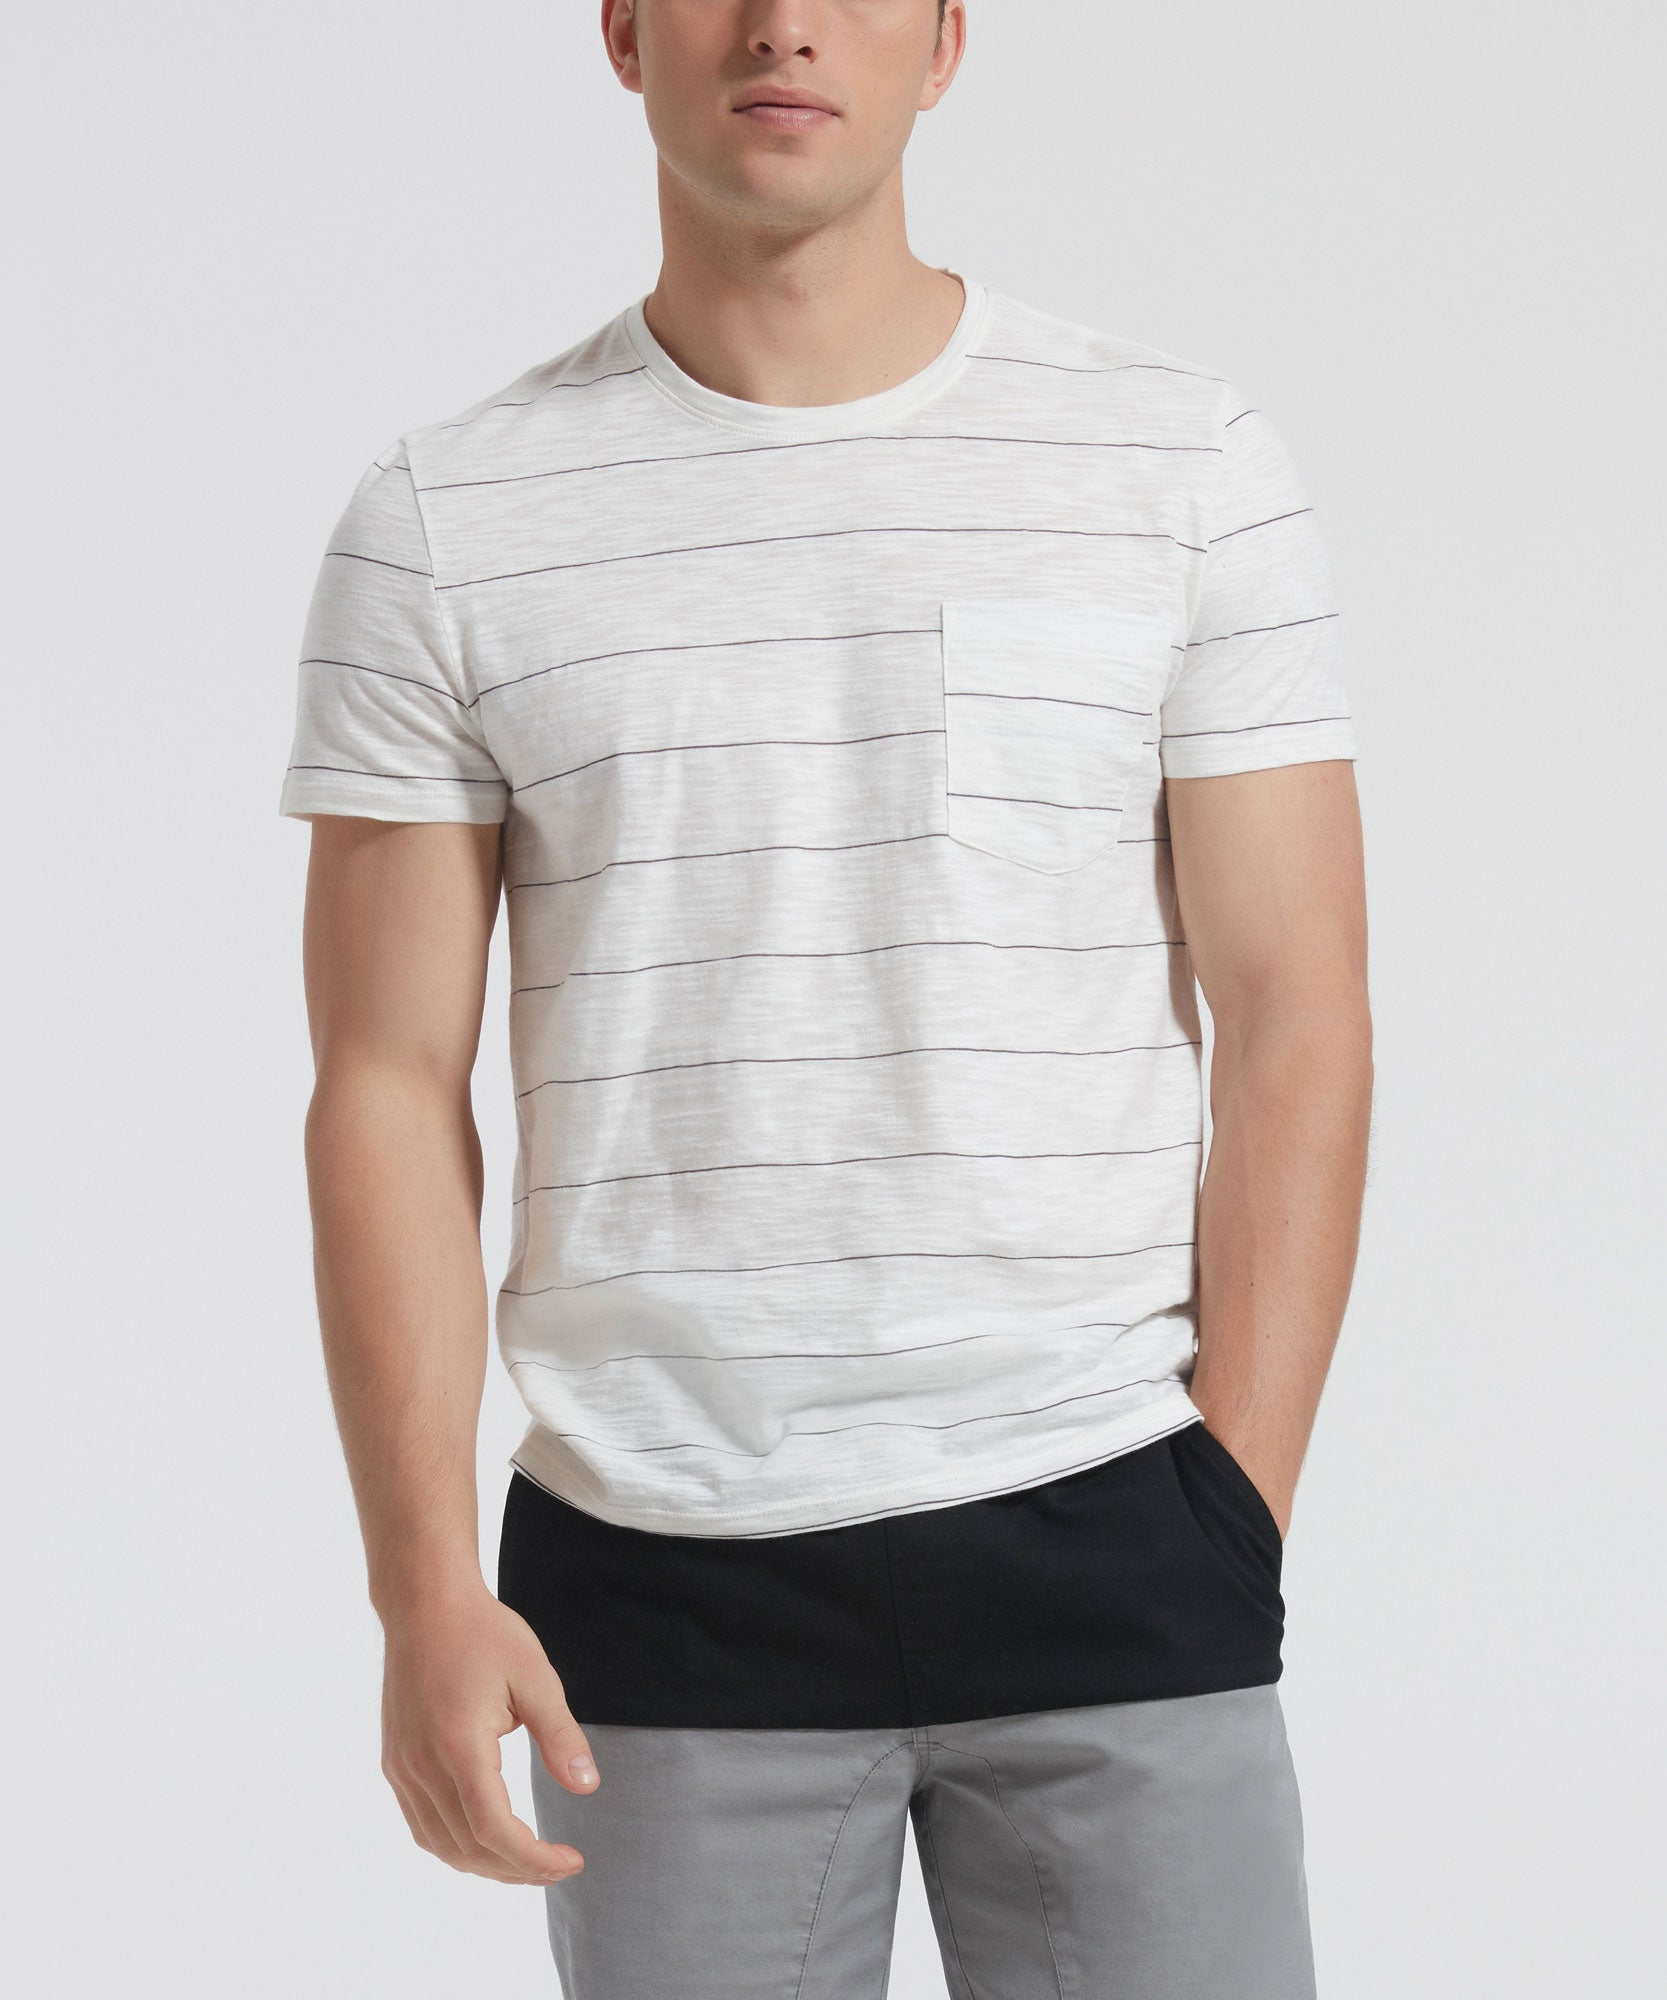 Chalk and Black Wide Striped Jersey Short Sleeve Pocket Tee - Men's Short Sleeve T-shirt by ATM Anthony Thomas Melillo